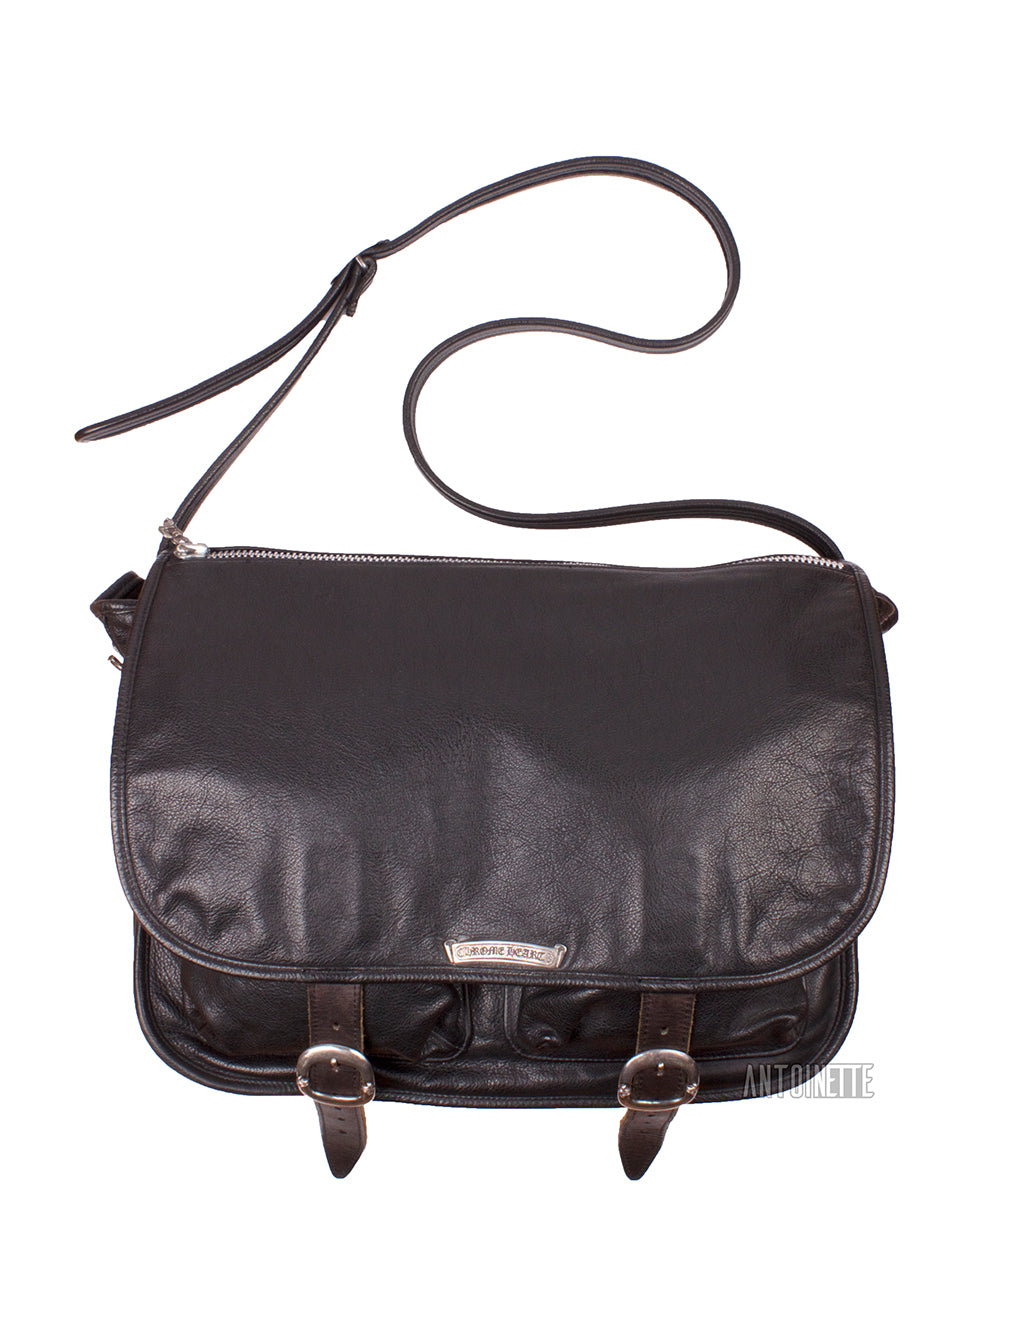 b0f65788f700 Chrome Hearts Black Leather Shoulder Bag – Antoinette Boutique